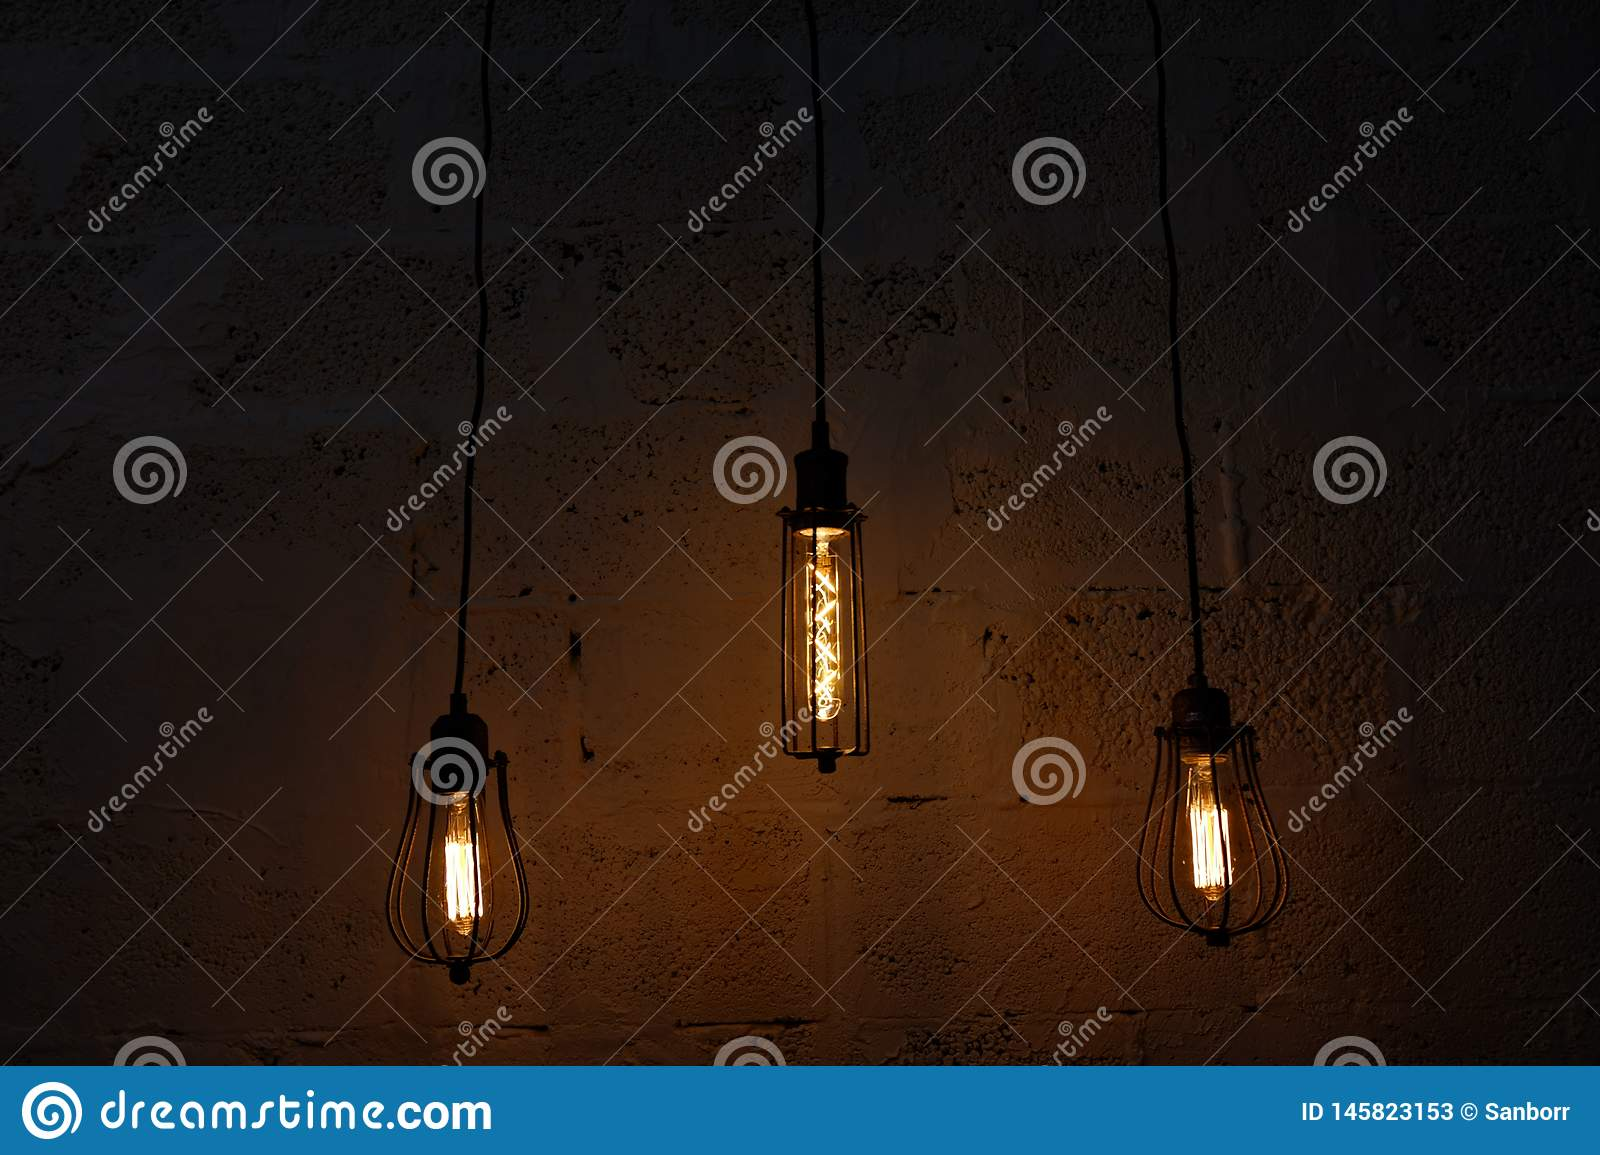 Dark background with glass retro-bulb Edison. Wallpapers with designer lamp of Edison. Designer light and lighting in interiors.